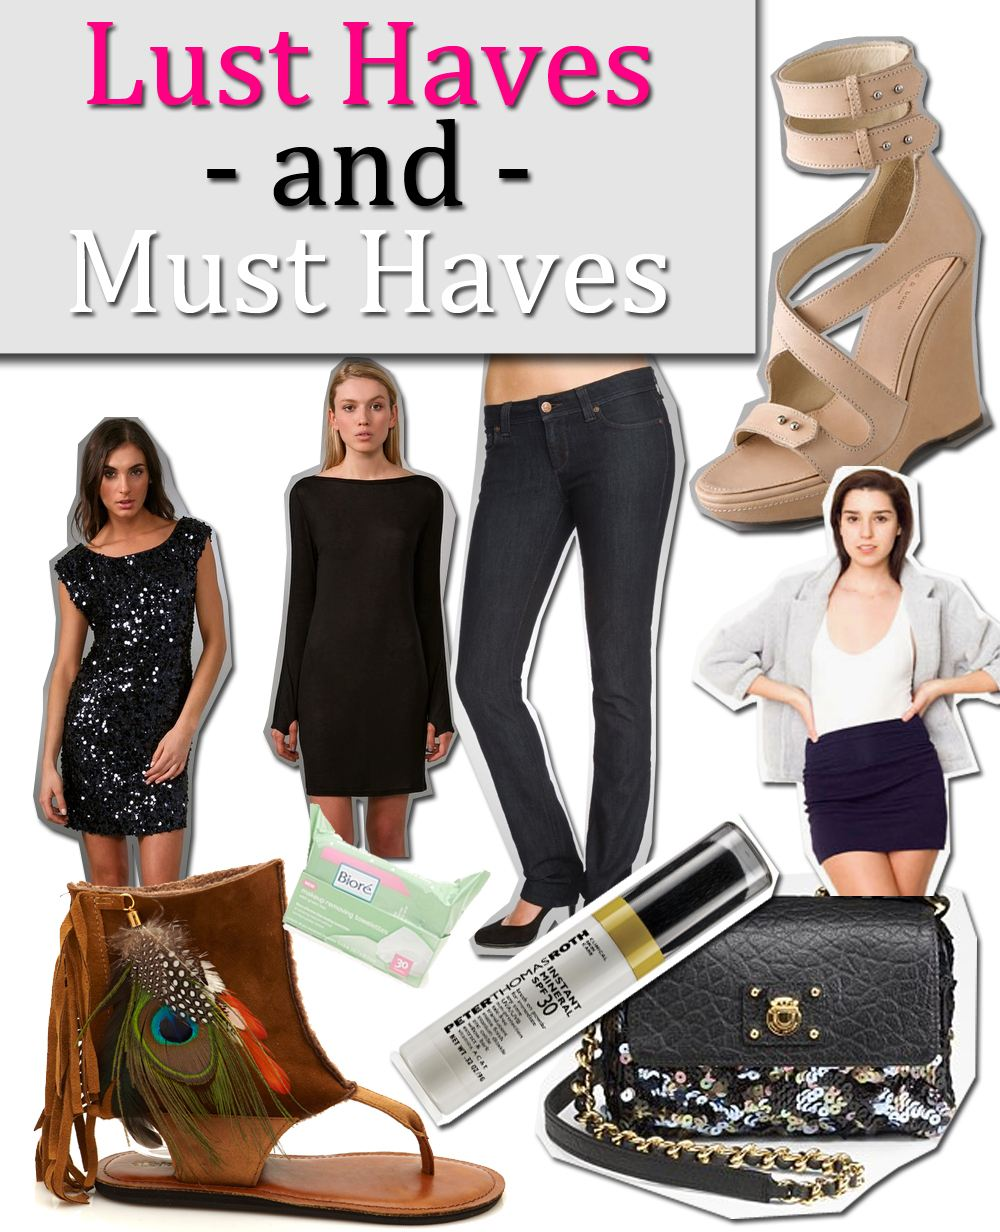 ANM Lust-Haves and Must-Haves post image